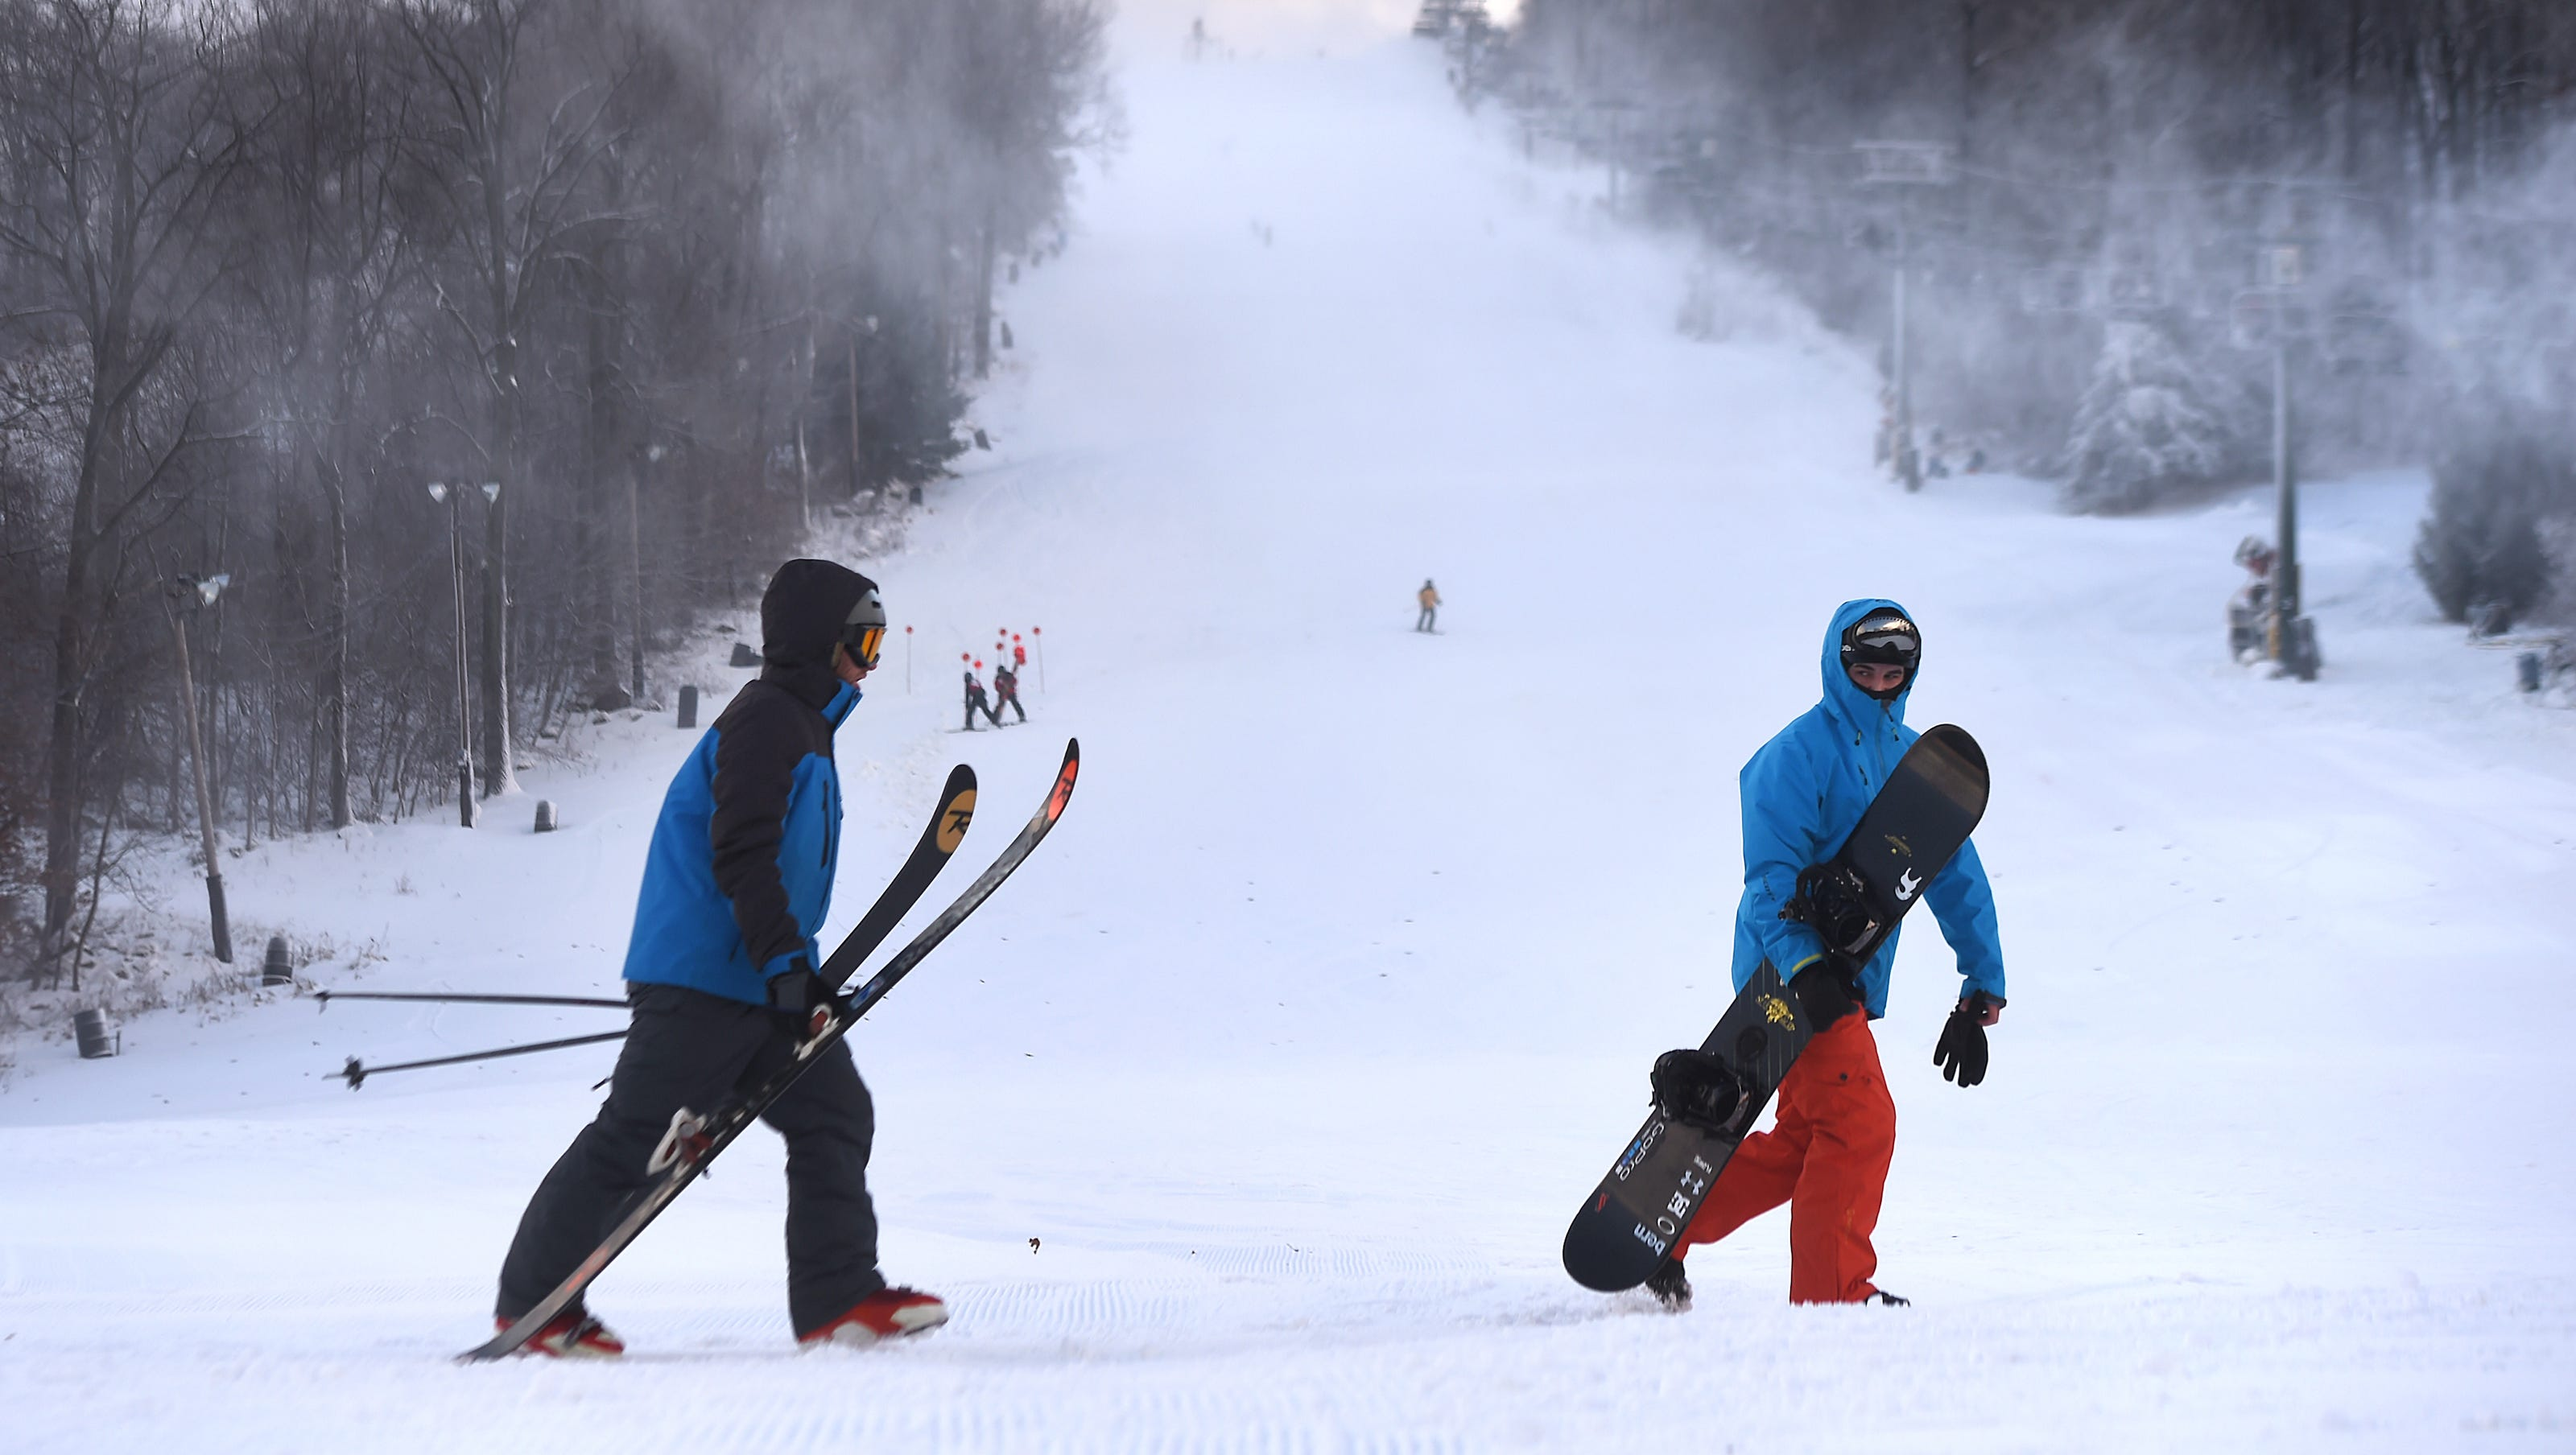 peak resorts to buy snow time resorts, including roundtop mountain